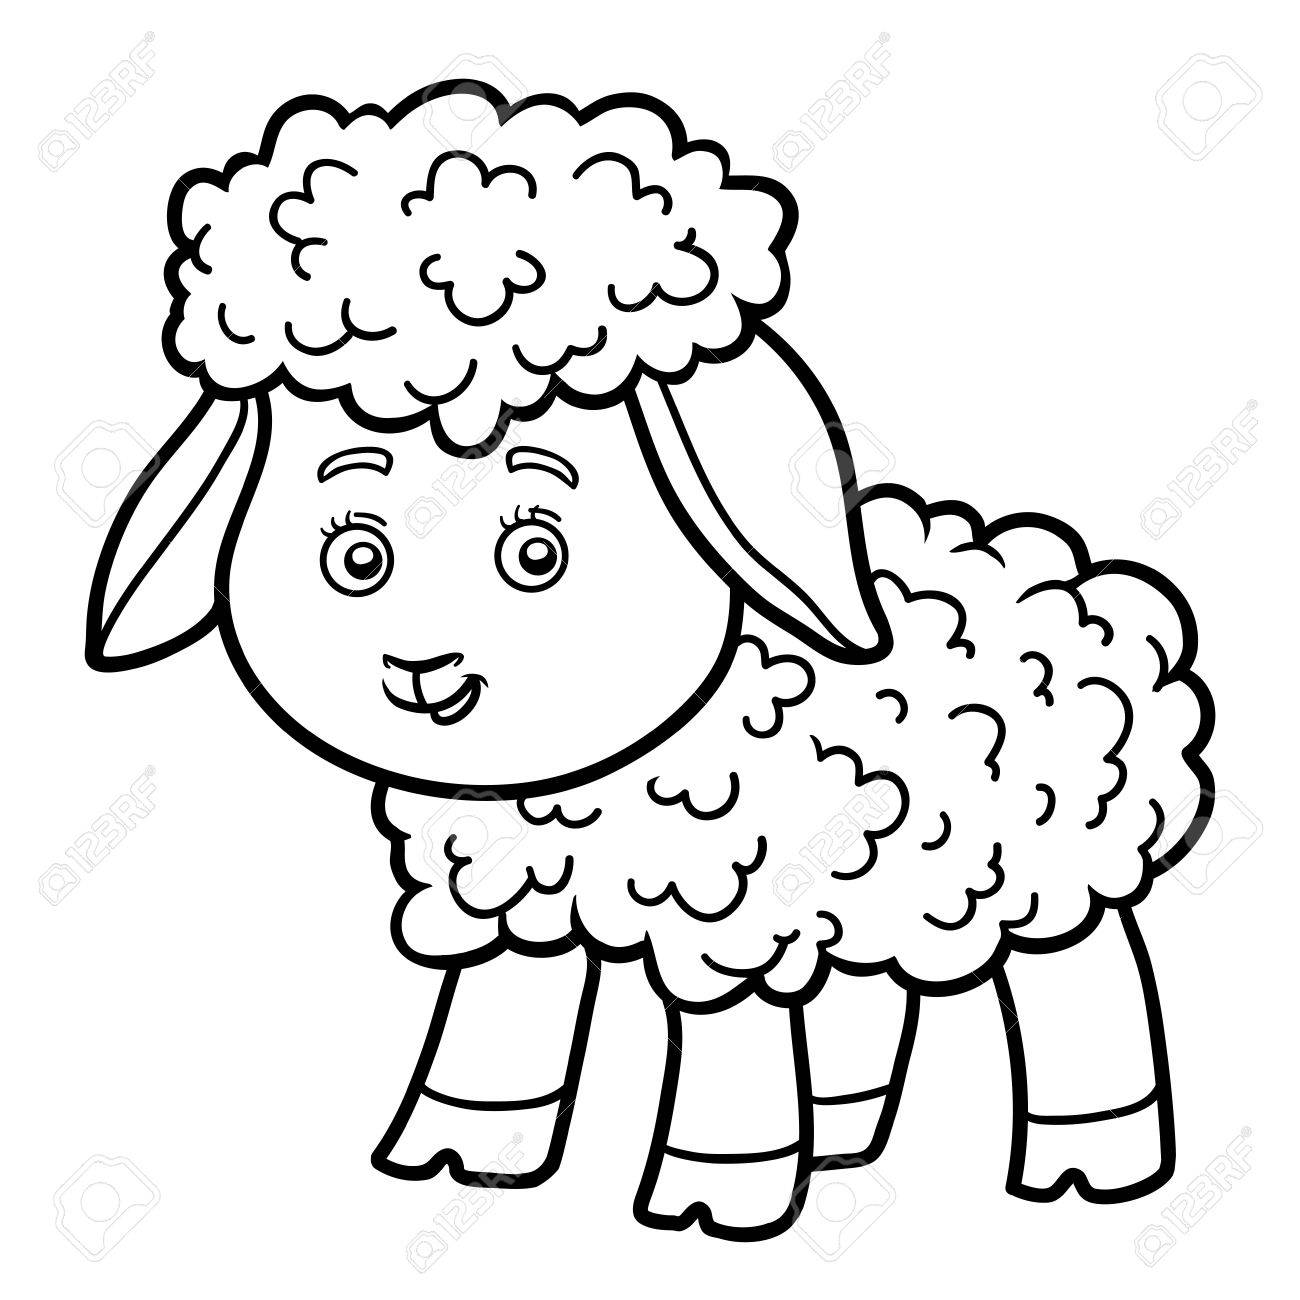 Coloring Book For Chilren Coloring Page With Little Sheep Royalty